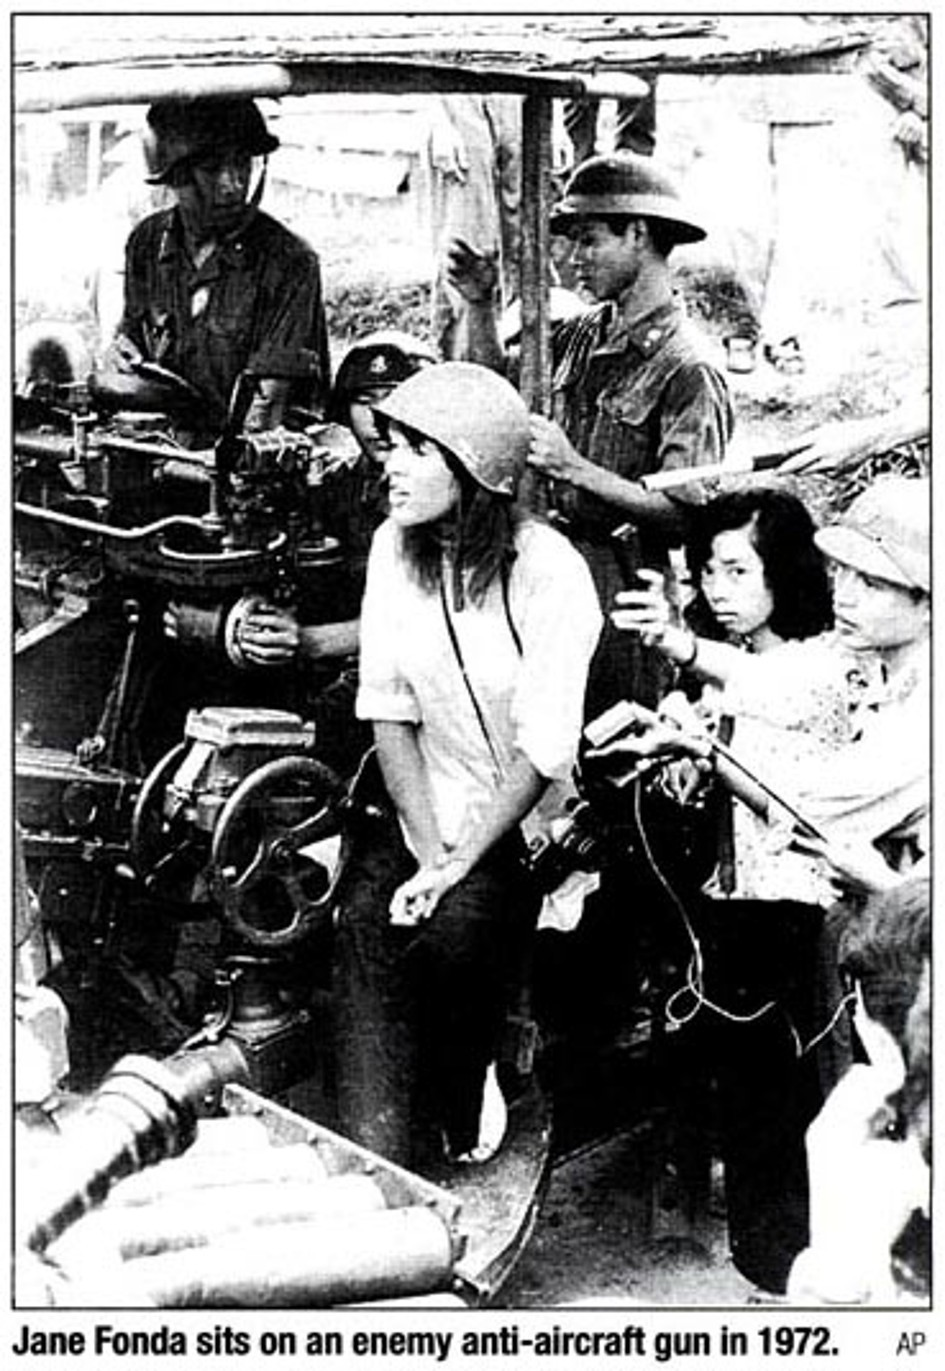 jane fonda in viet nam